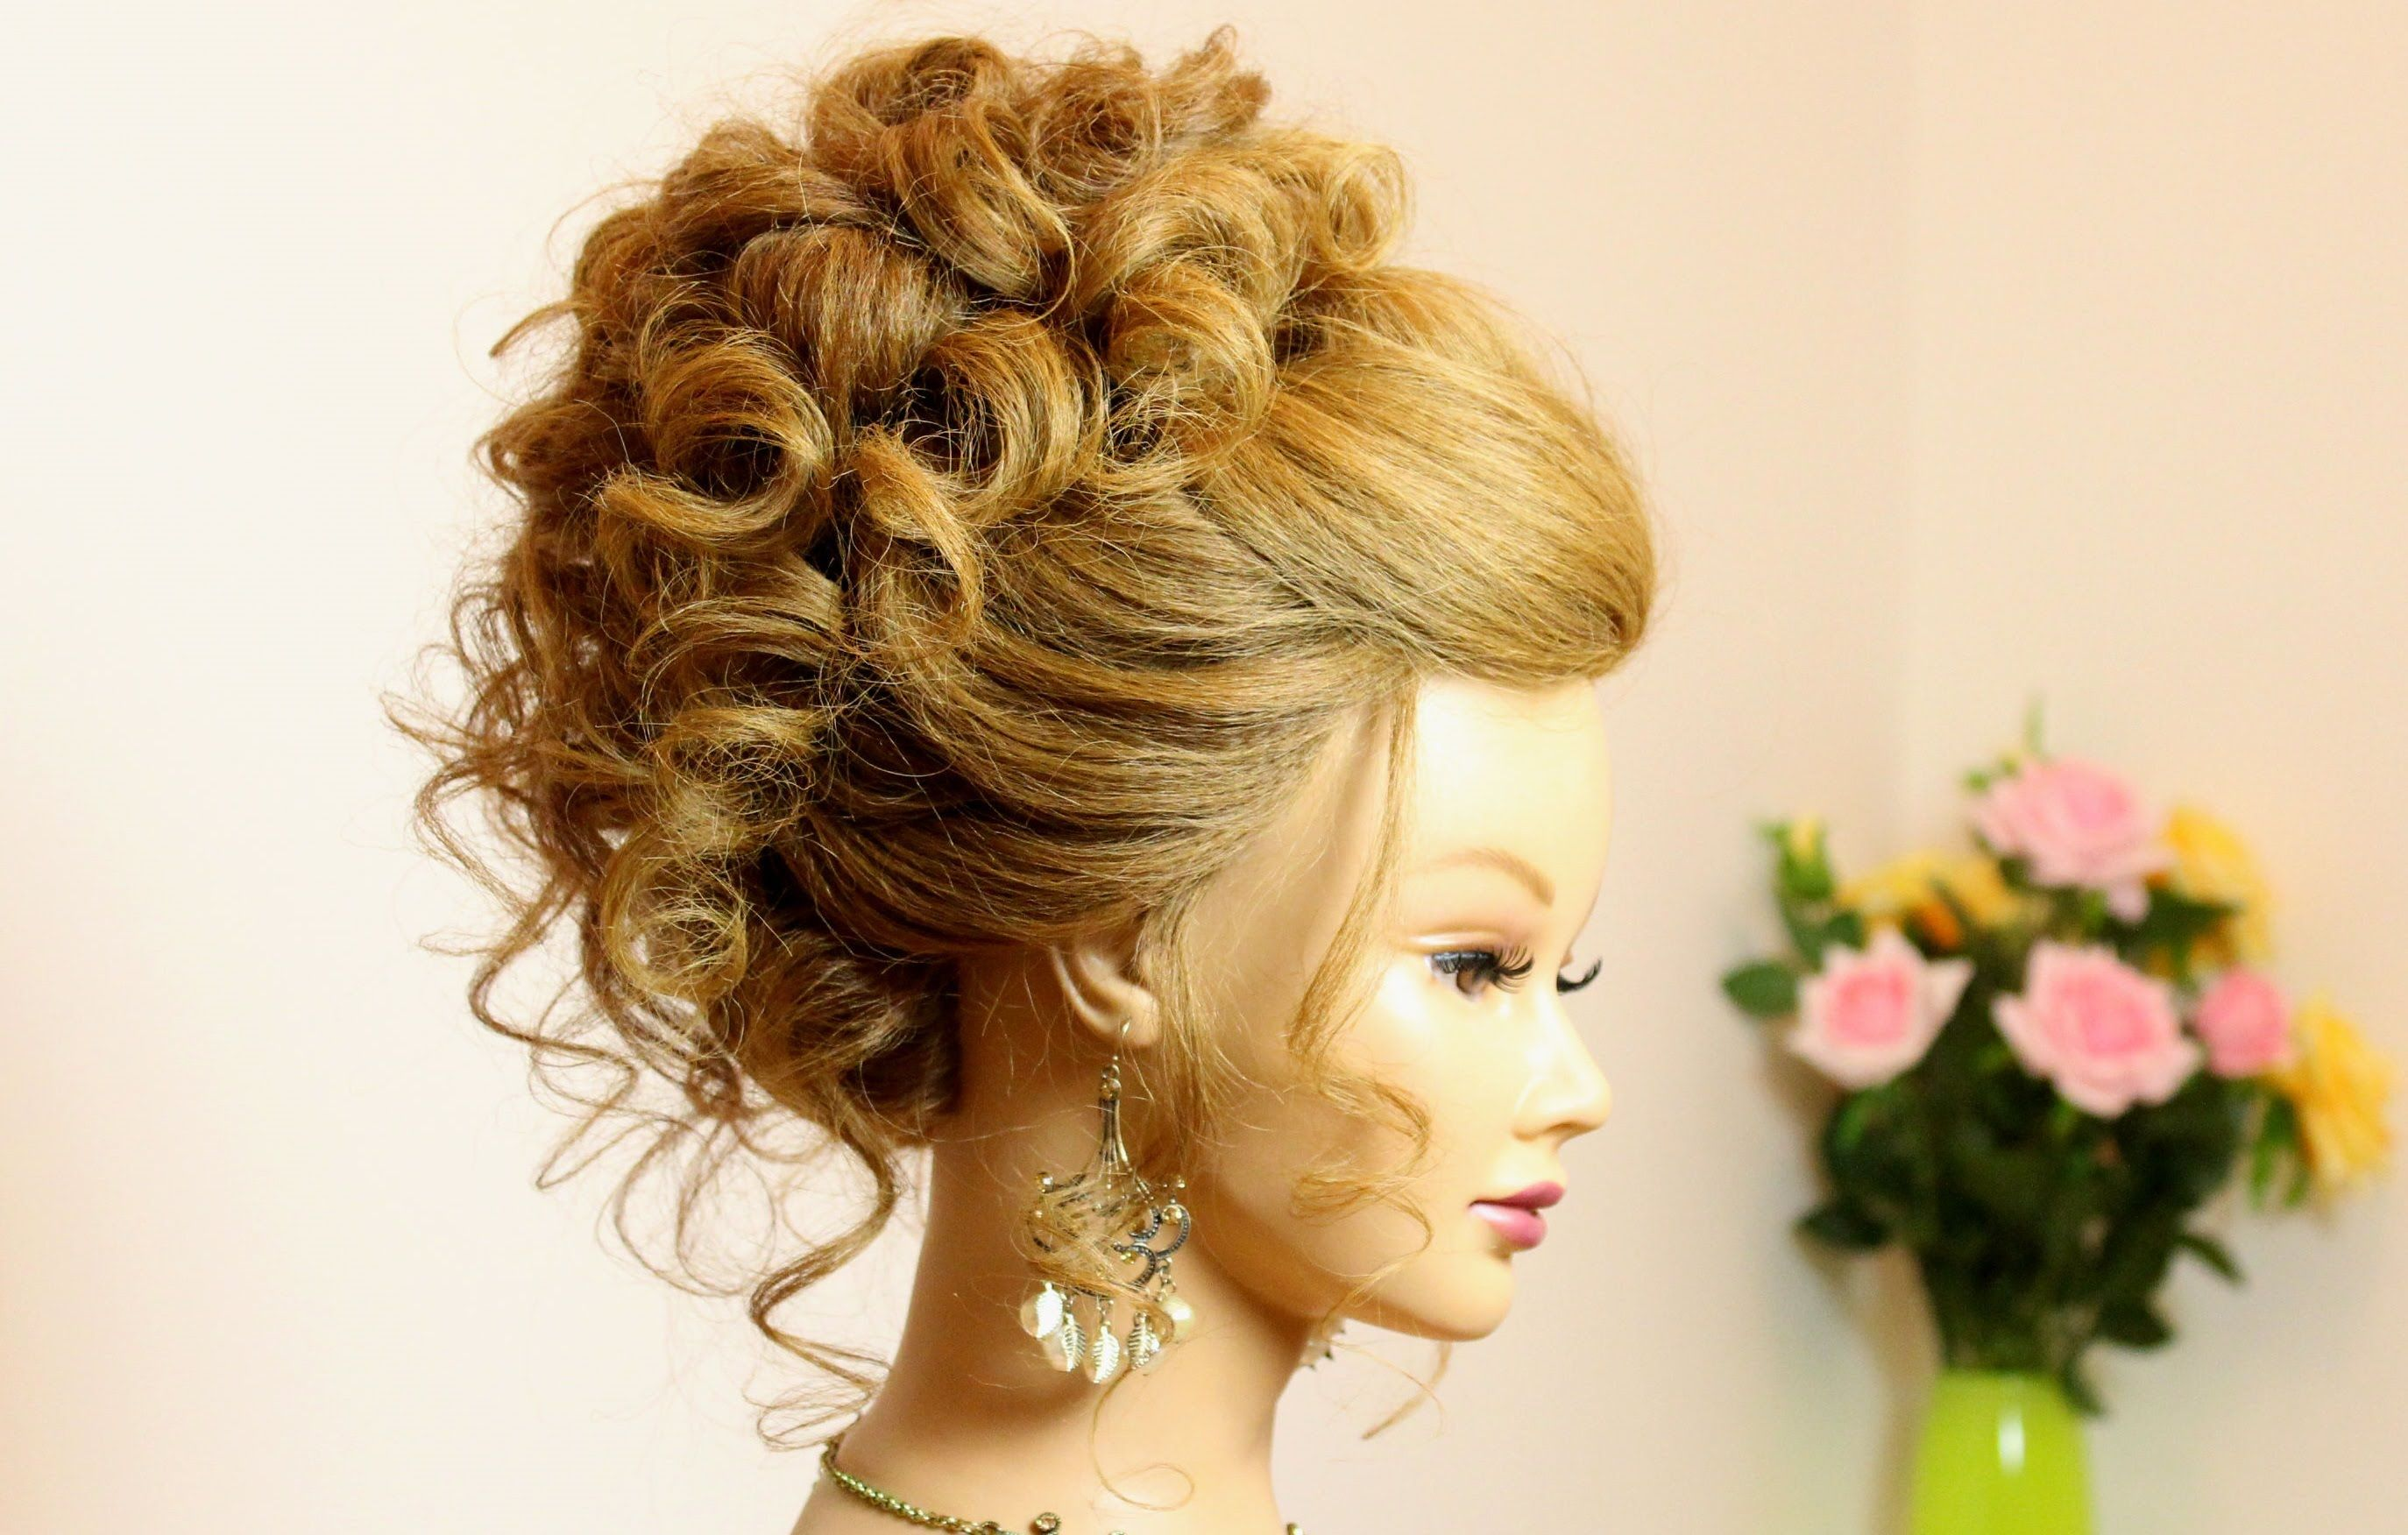 Wedding Prom Updo Hairstyle For Long Medium Hair Medium Hair Styles Hair Styles Long Hair Wedding Styles